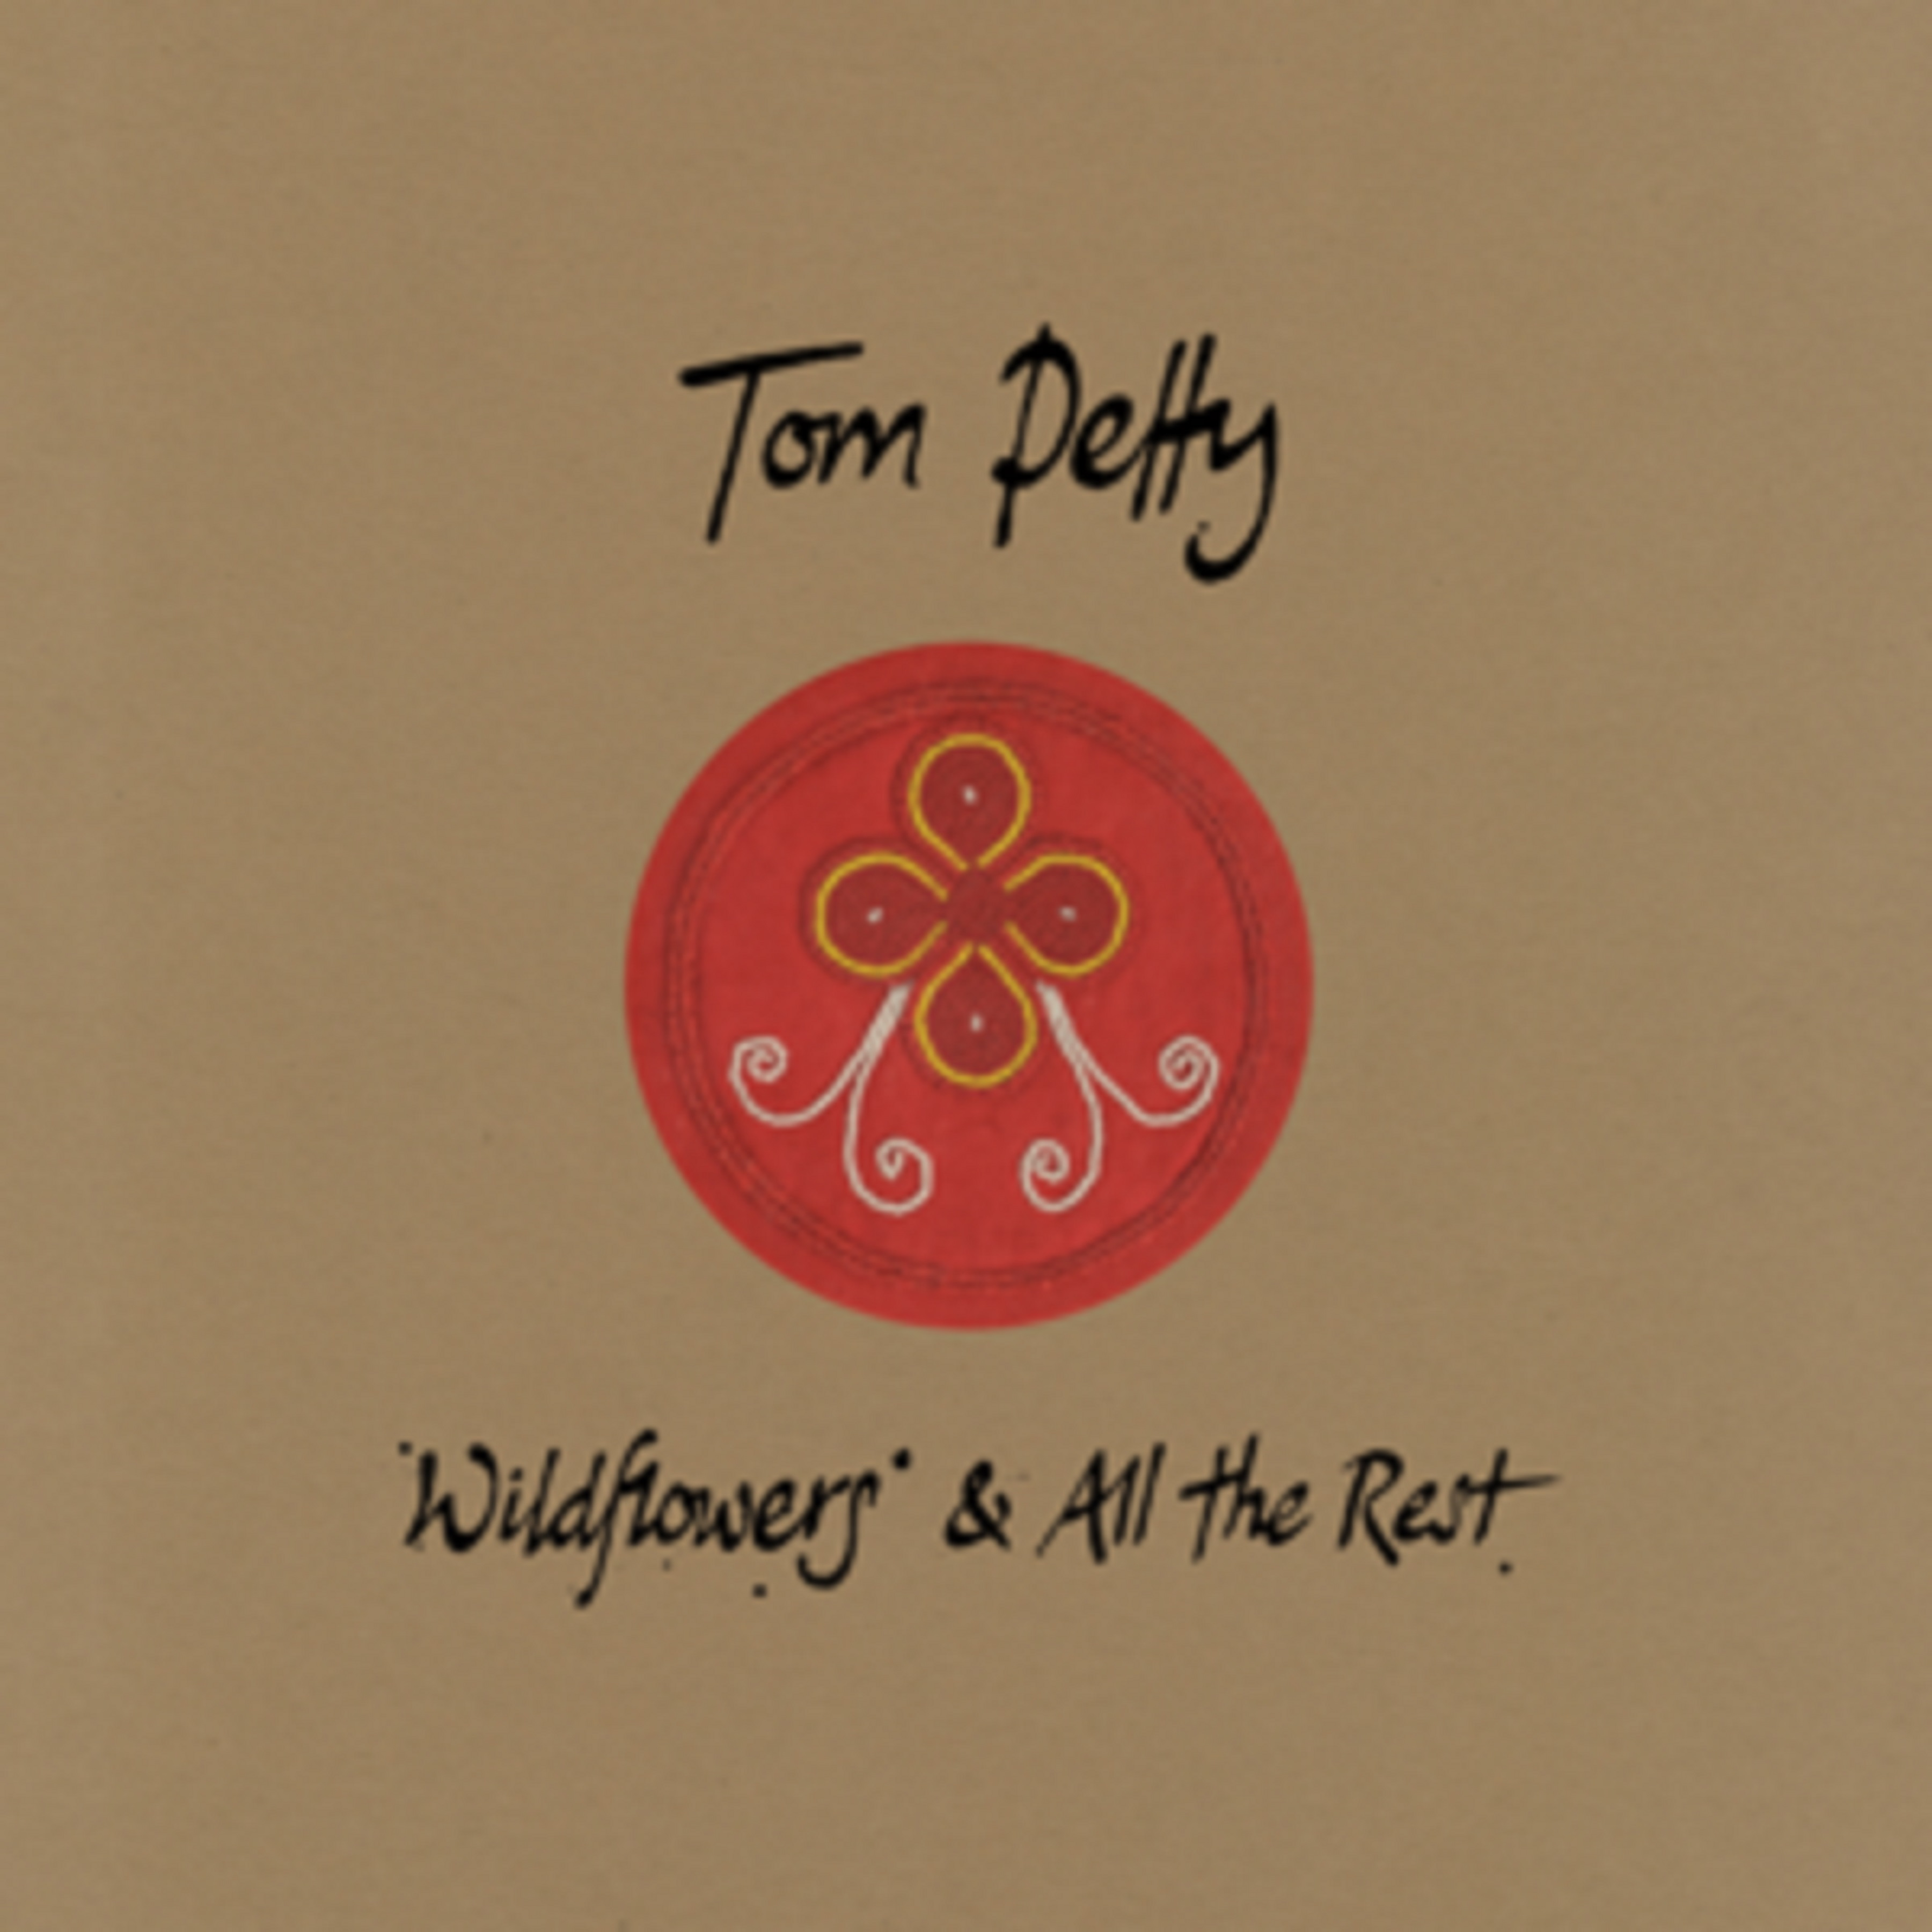 Tom Petty's Wildflowers & All The Rest due Oct 16